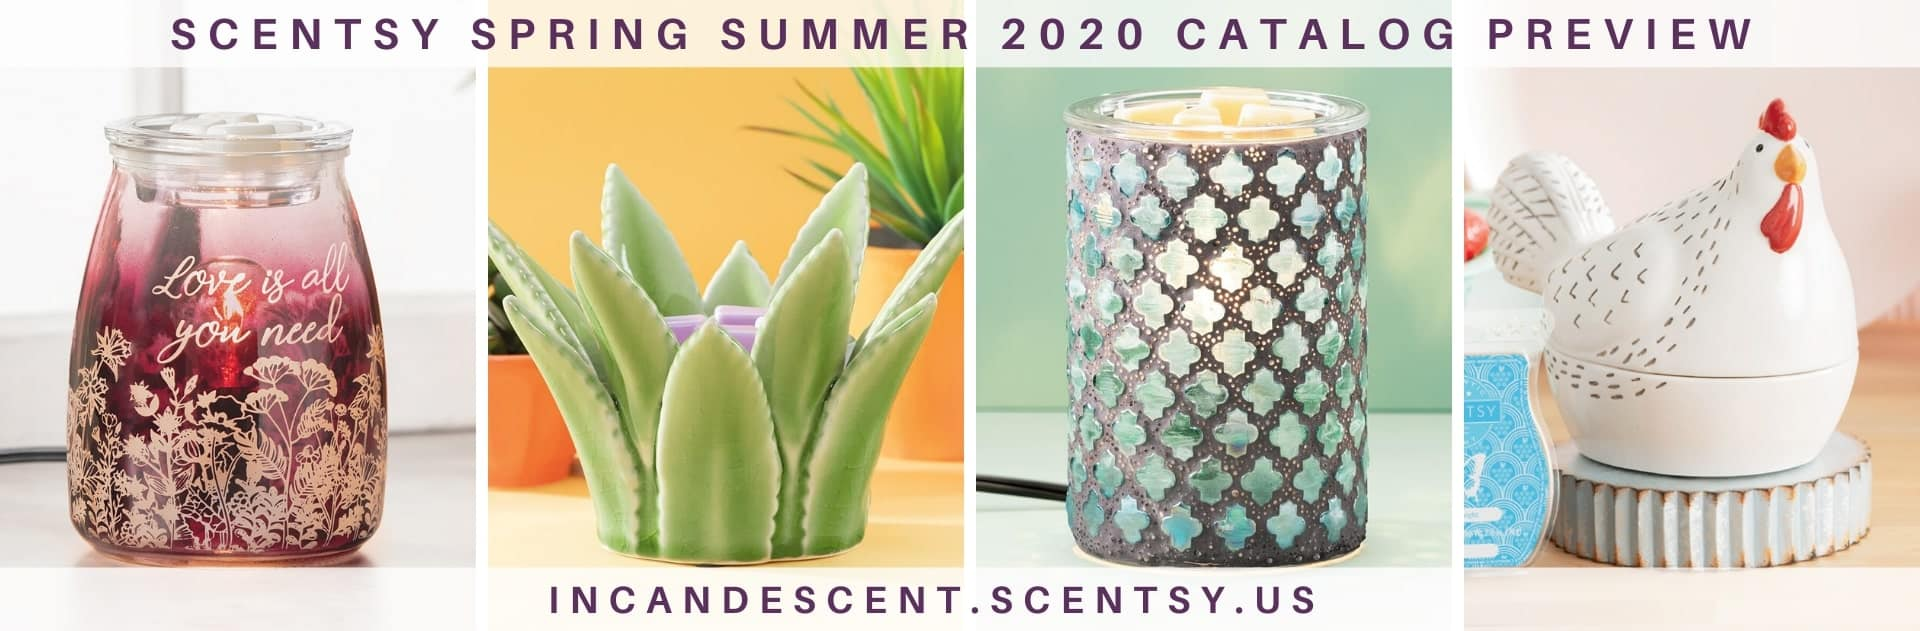 SCENTSY SPRING SUMMER 2020 CATALOG PREVIEW